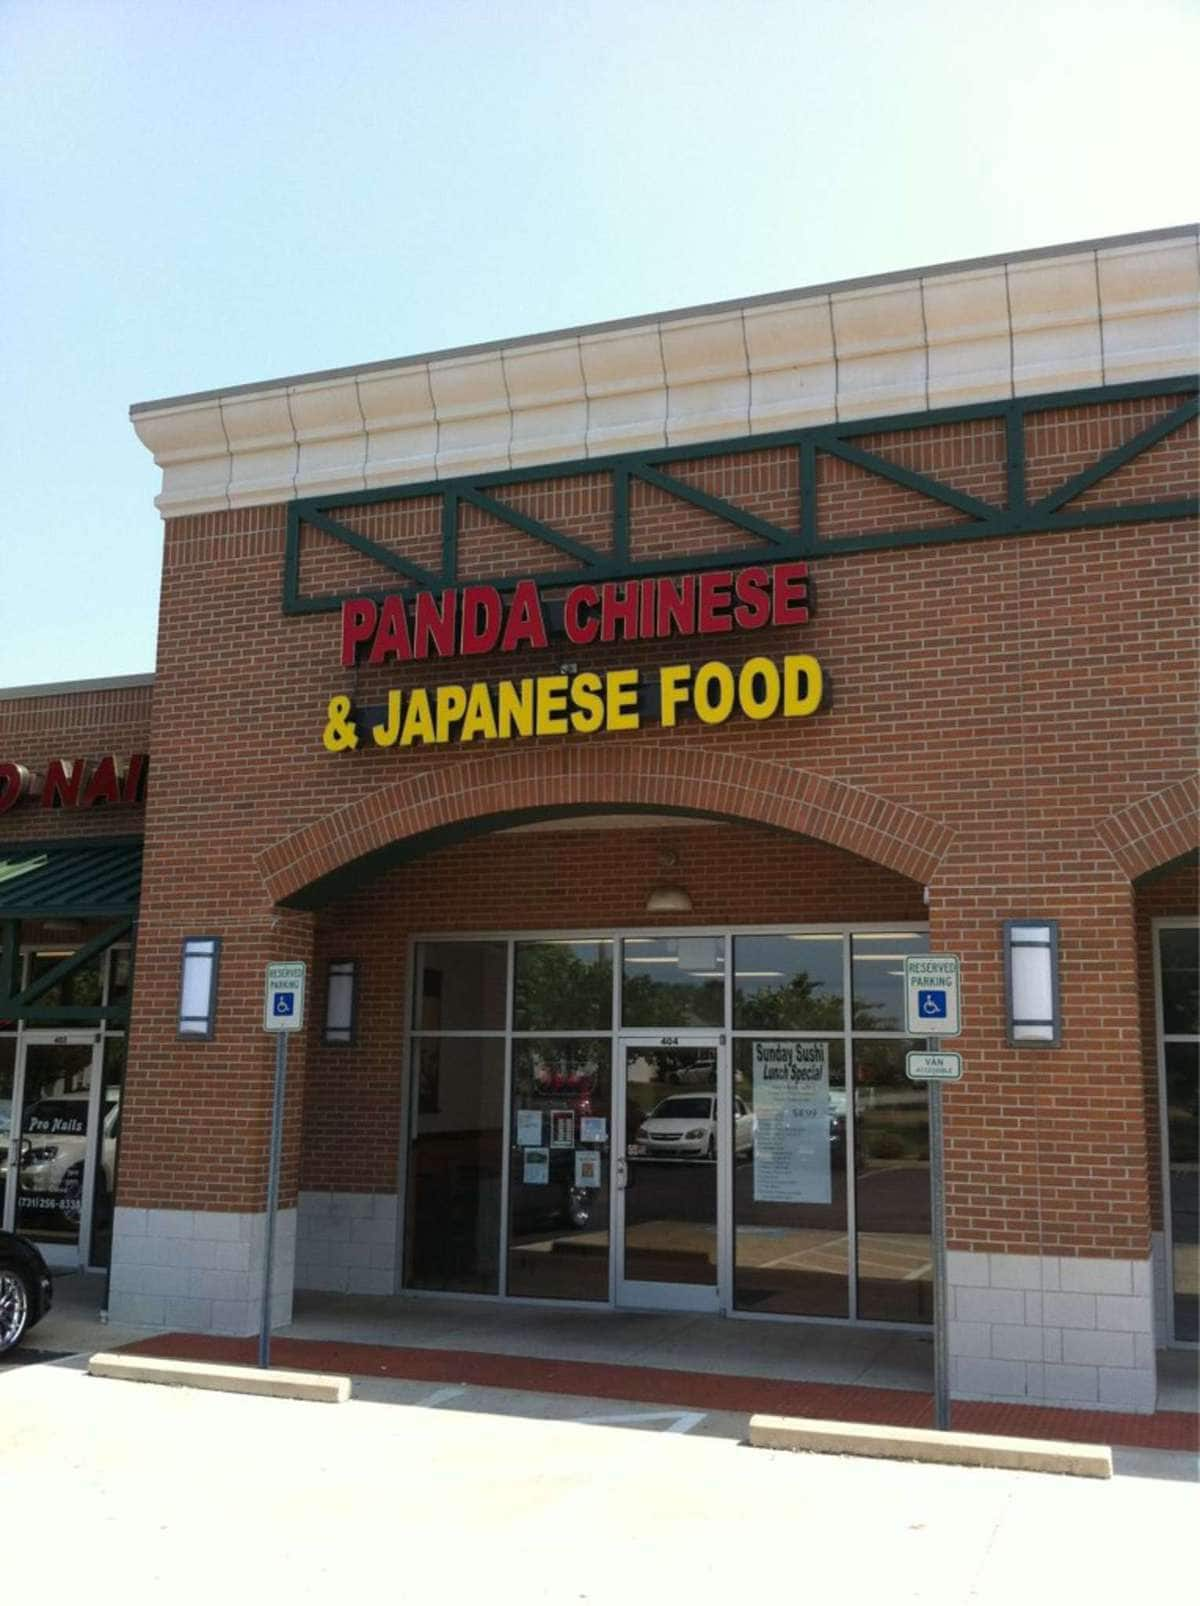 Panda Chinese and Japanese Food